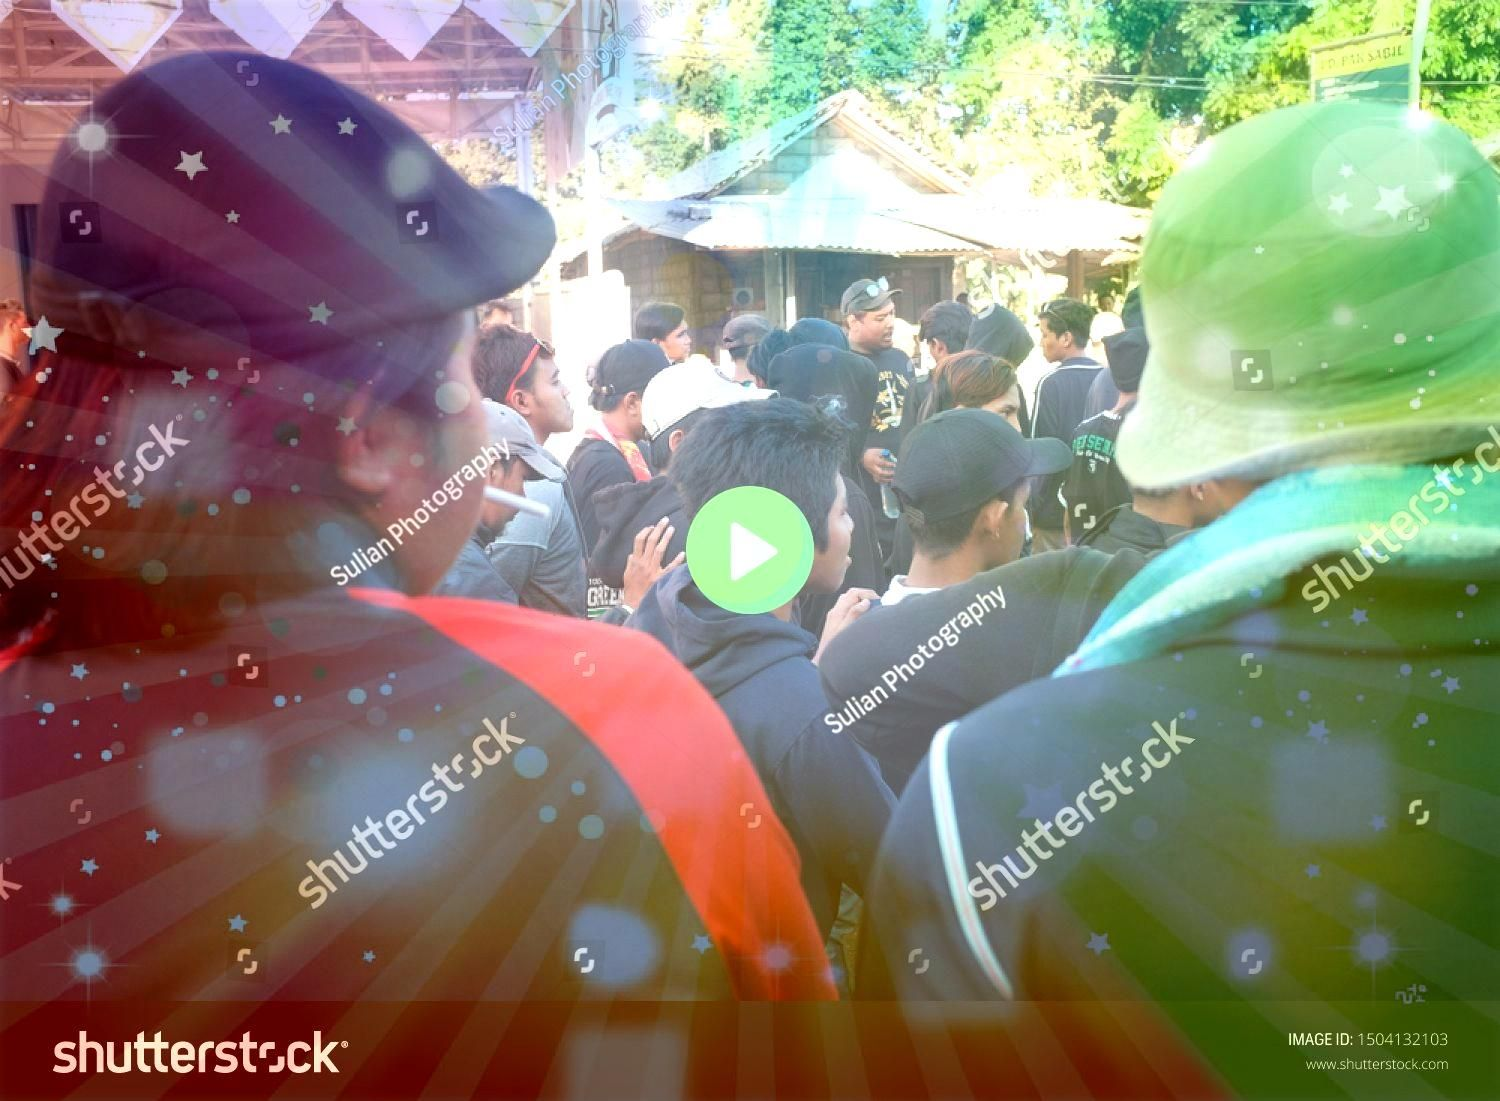 Indonesia  July 13 2019 View of crowd of people walking down the street in busy rush hour Yogyakarta Indonesia  July 13 2019 View of crowd of people walking down the stre...